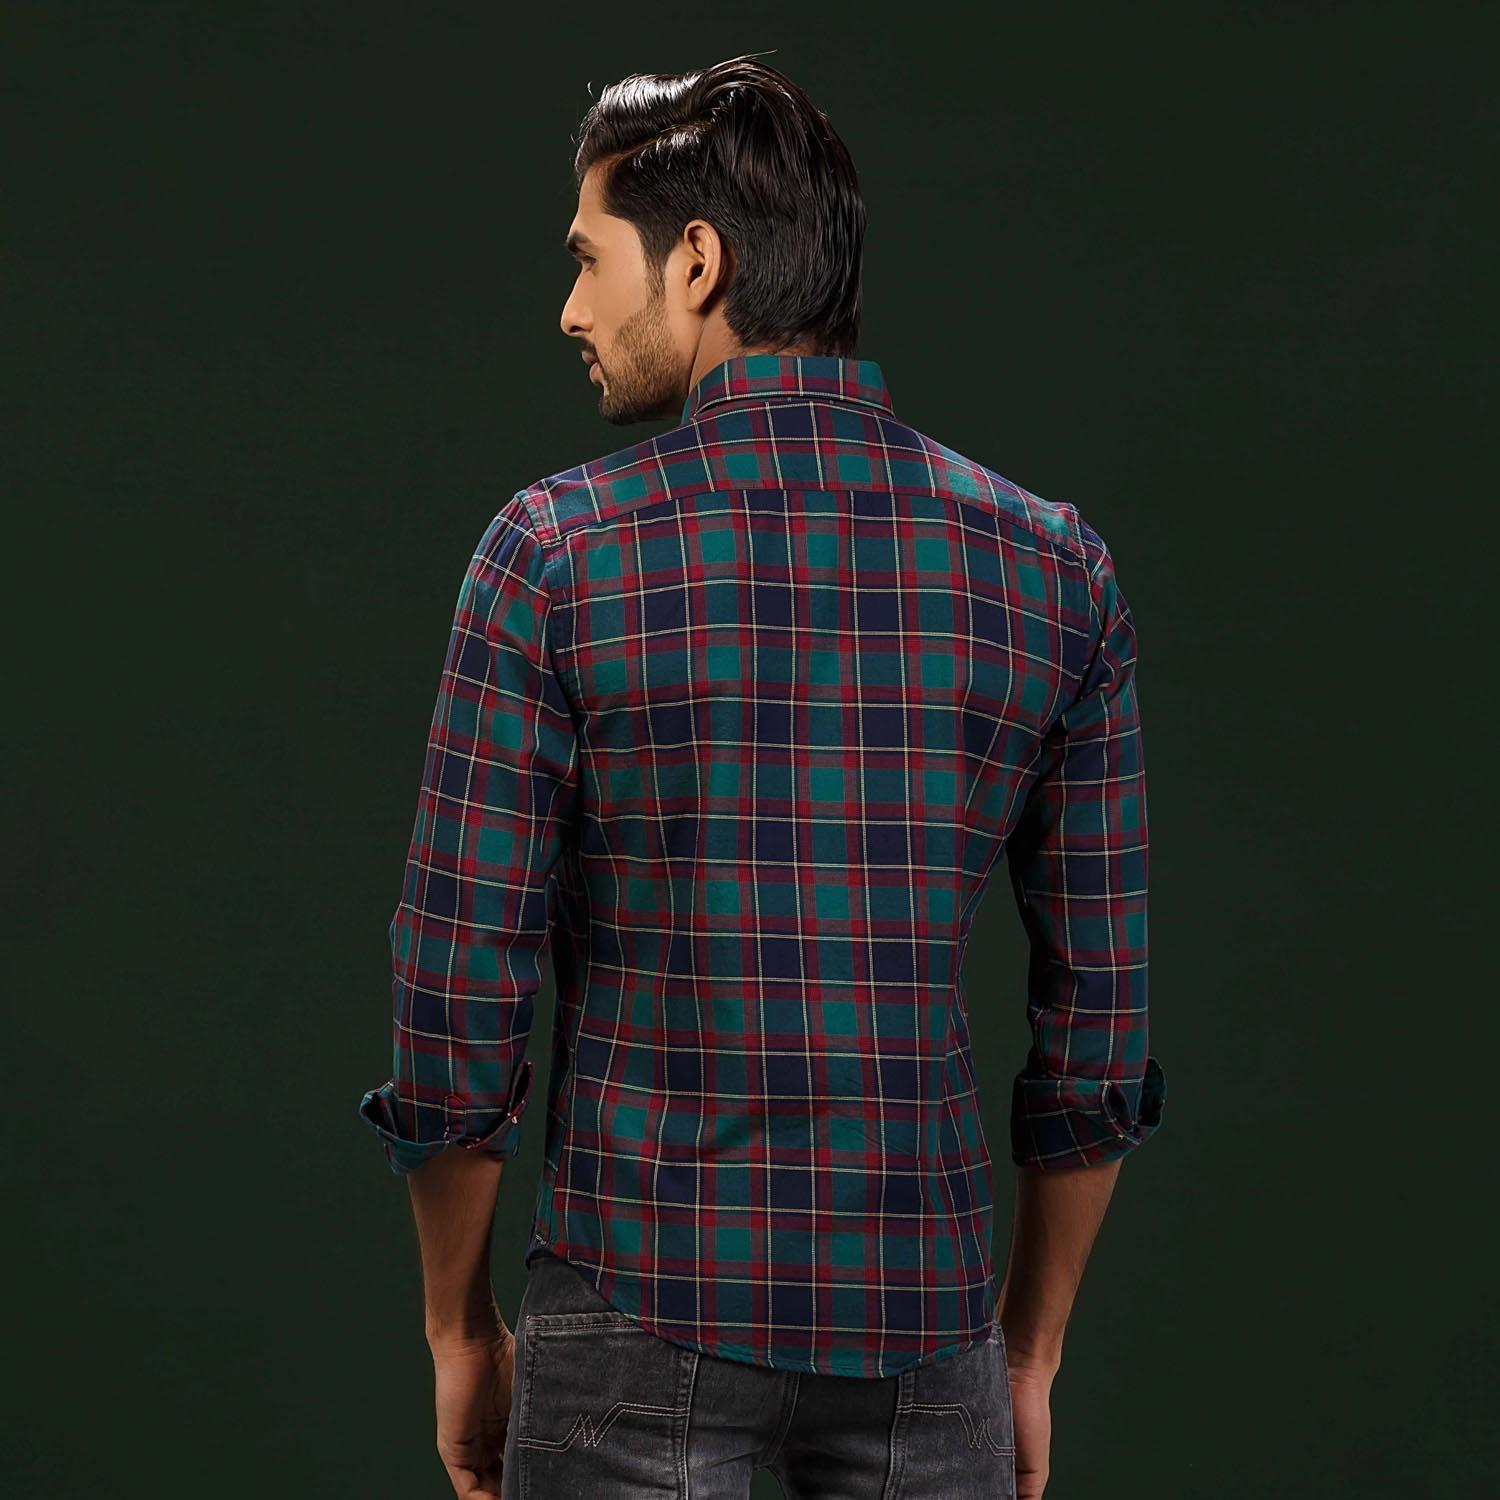 Green Button Gown Classic Check Shirt